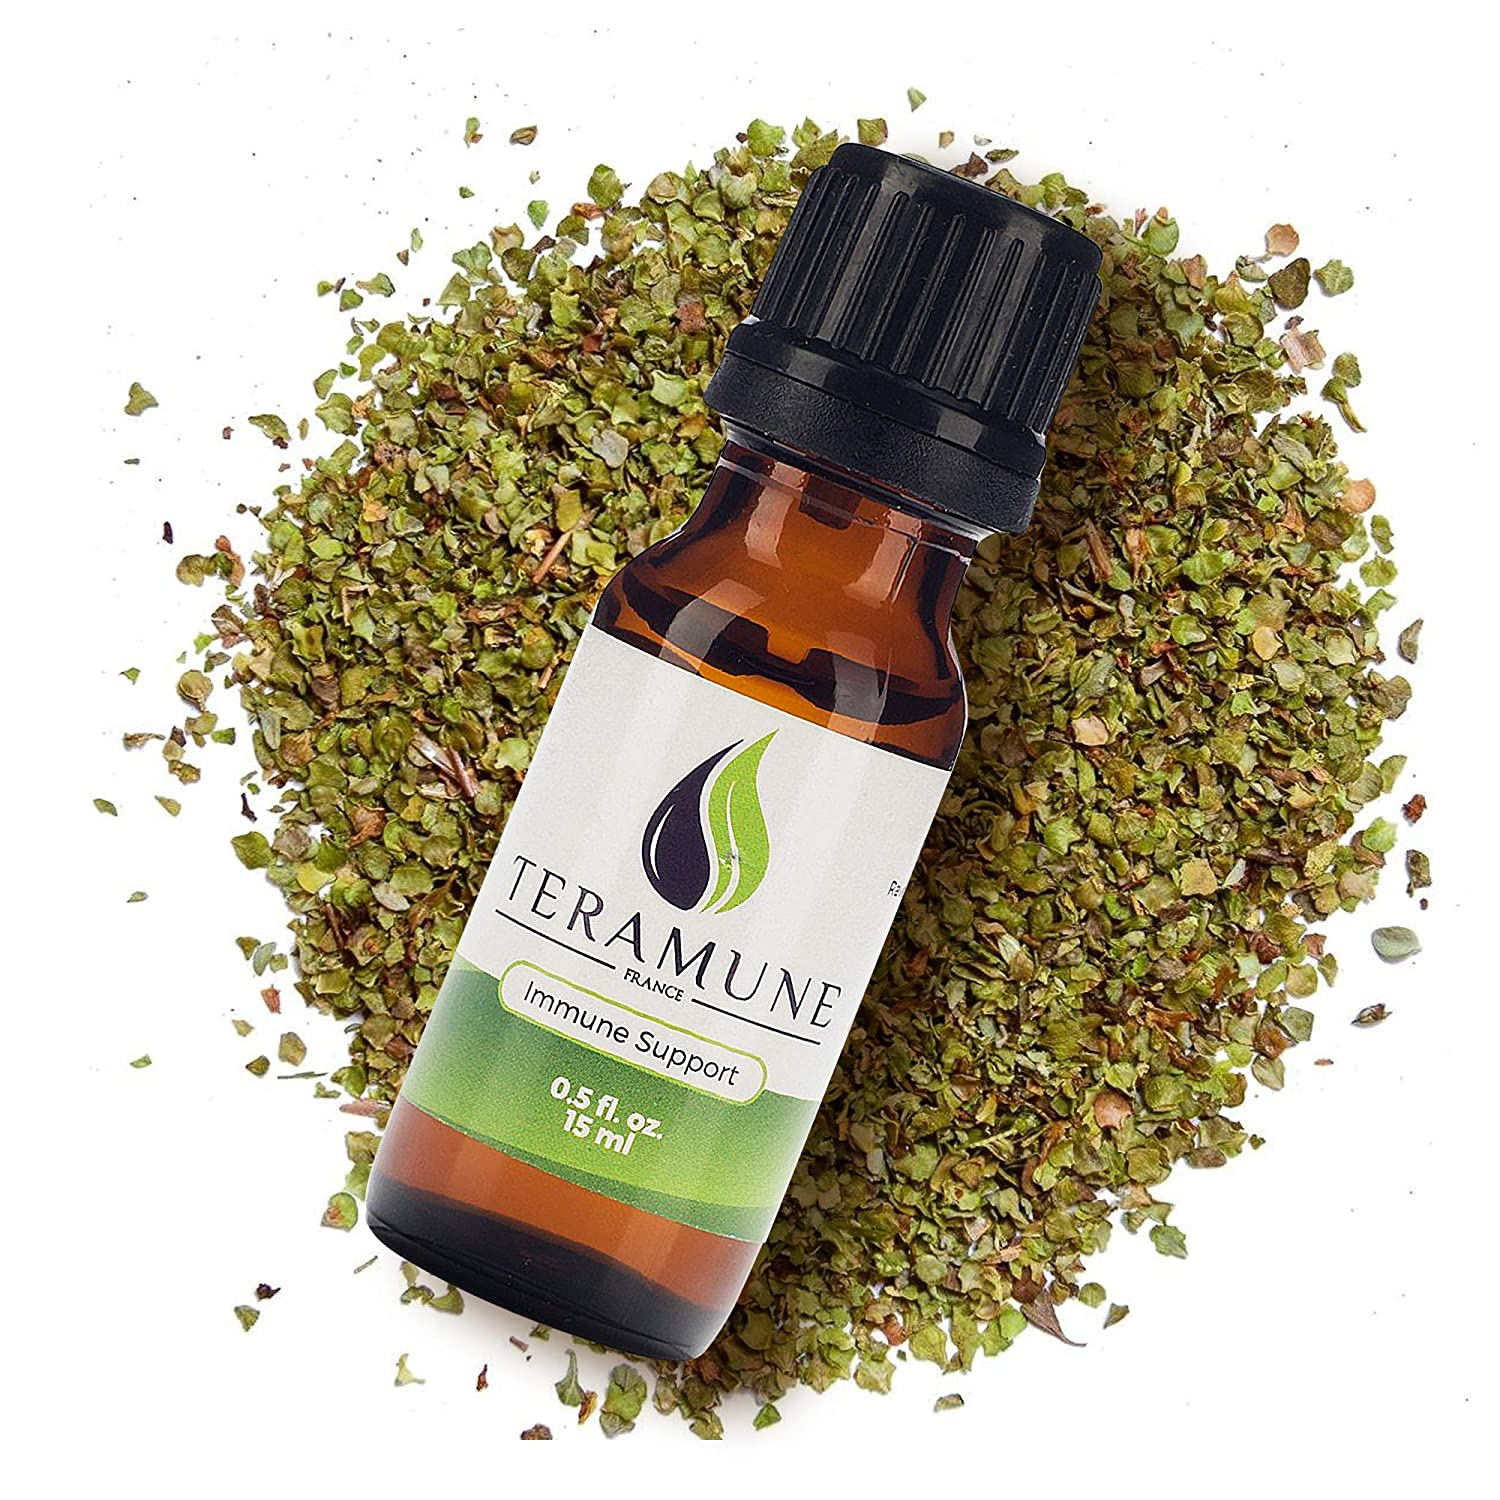 Immune System Booster - Peppermint Essential Oil - Eucalyptus Essential Oil - Essential Oil Blends - Immunity Booster - Immunity Essential Oils - Immune Essential Oil - Immune Support 15 ml - TERAMUNE